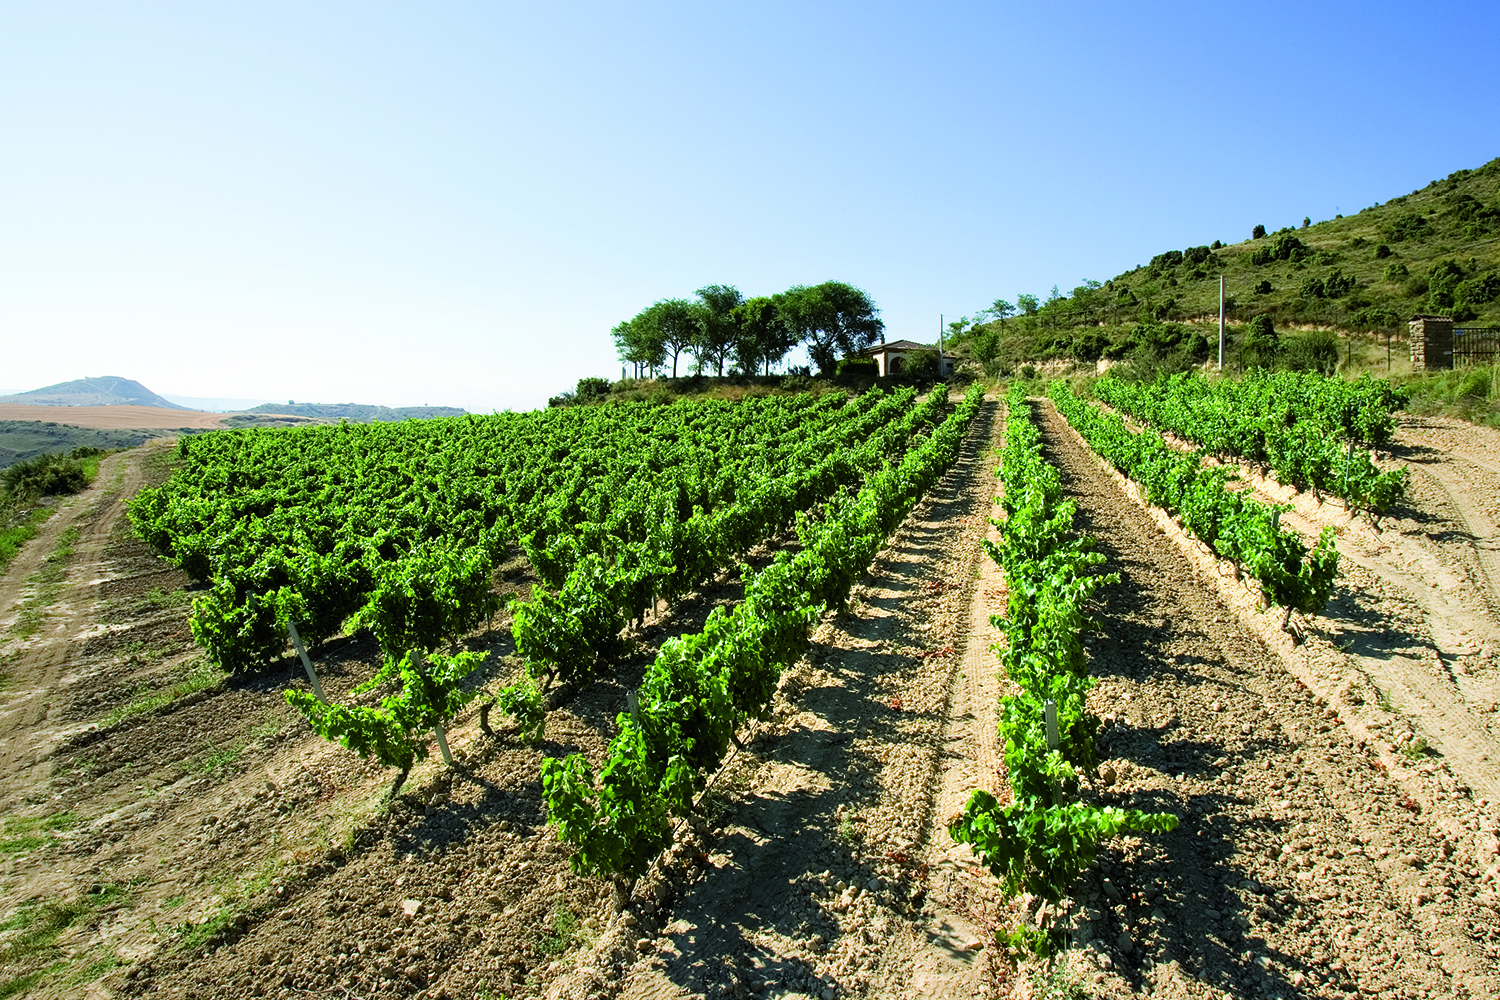 Winery Focus: Rioja's Masters of Age